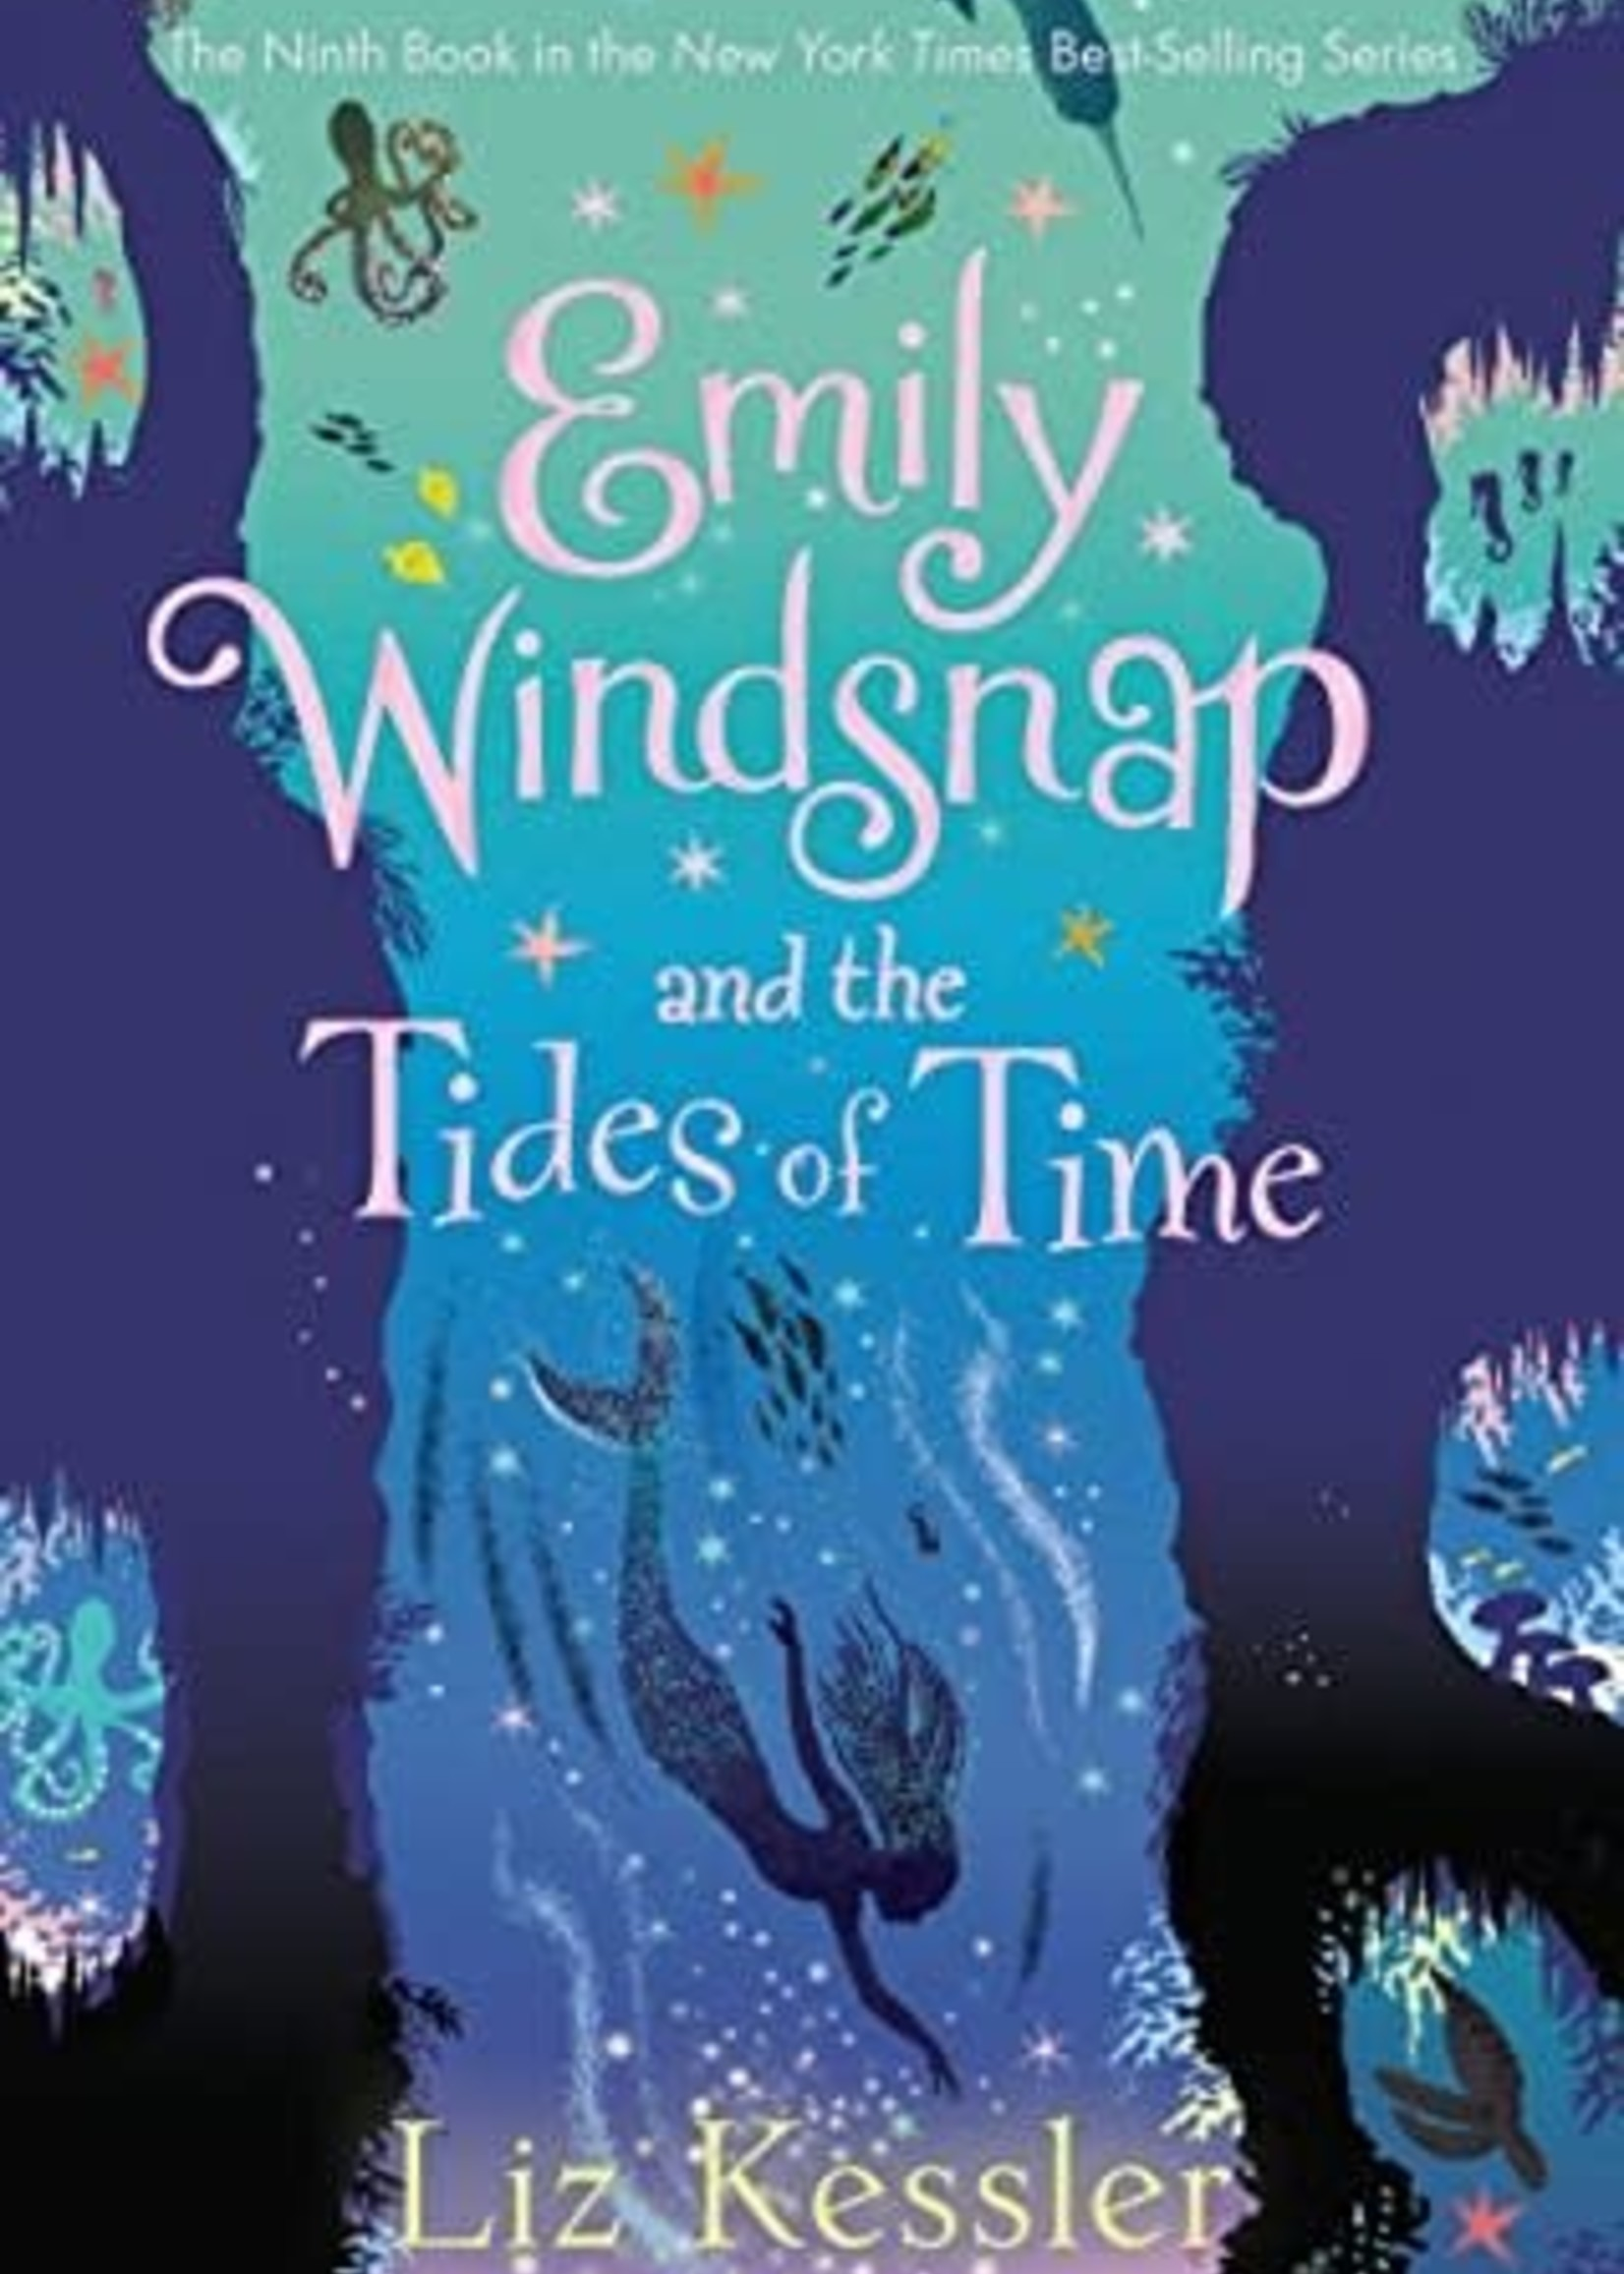 Emily Windsnap and the Tides of Time (Emily Windsnap #9) by Liz Kessler